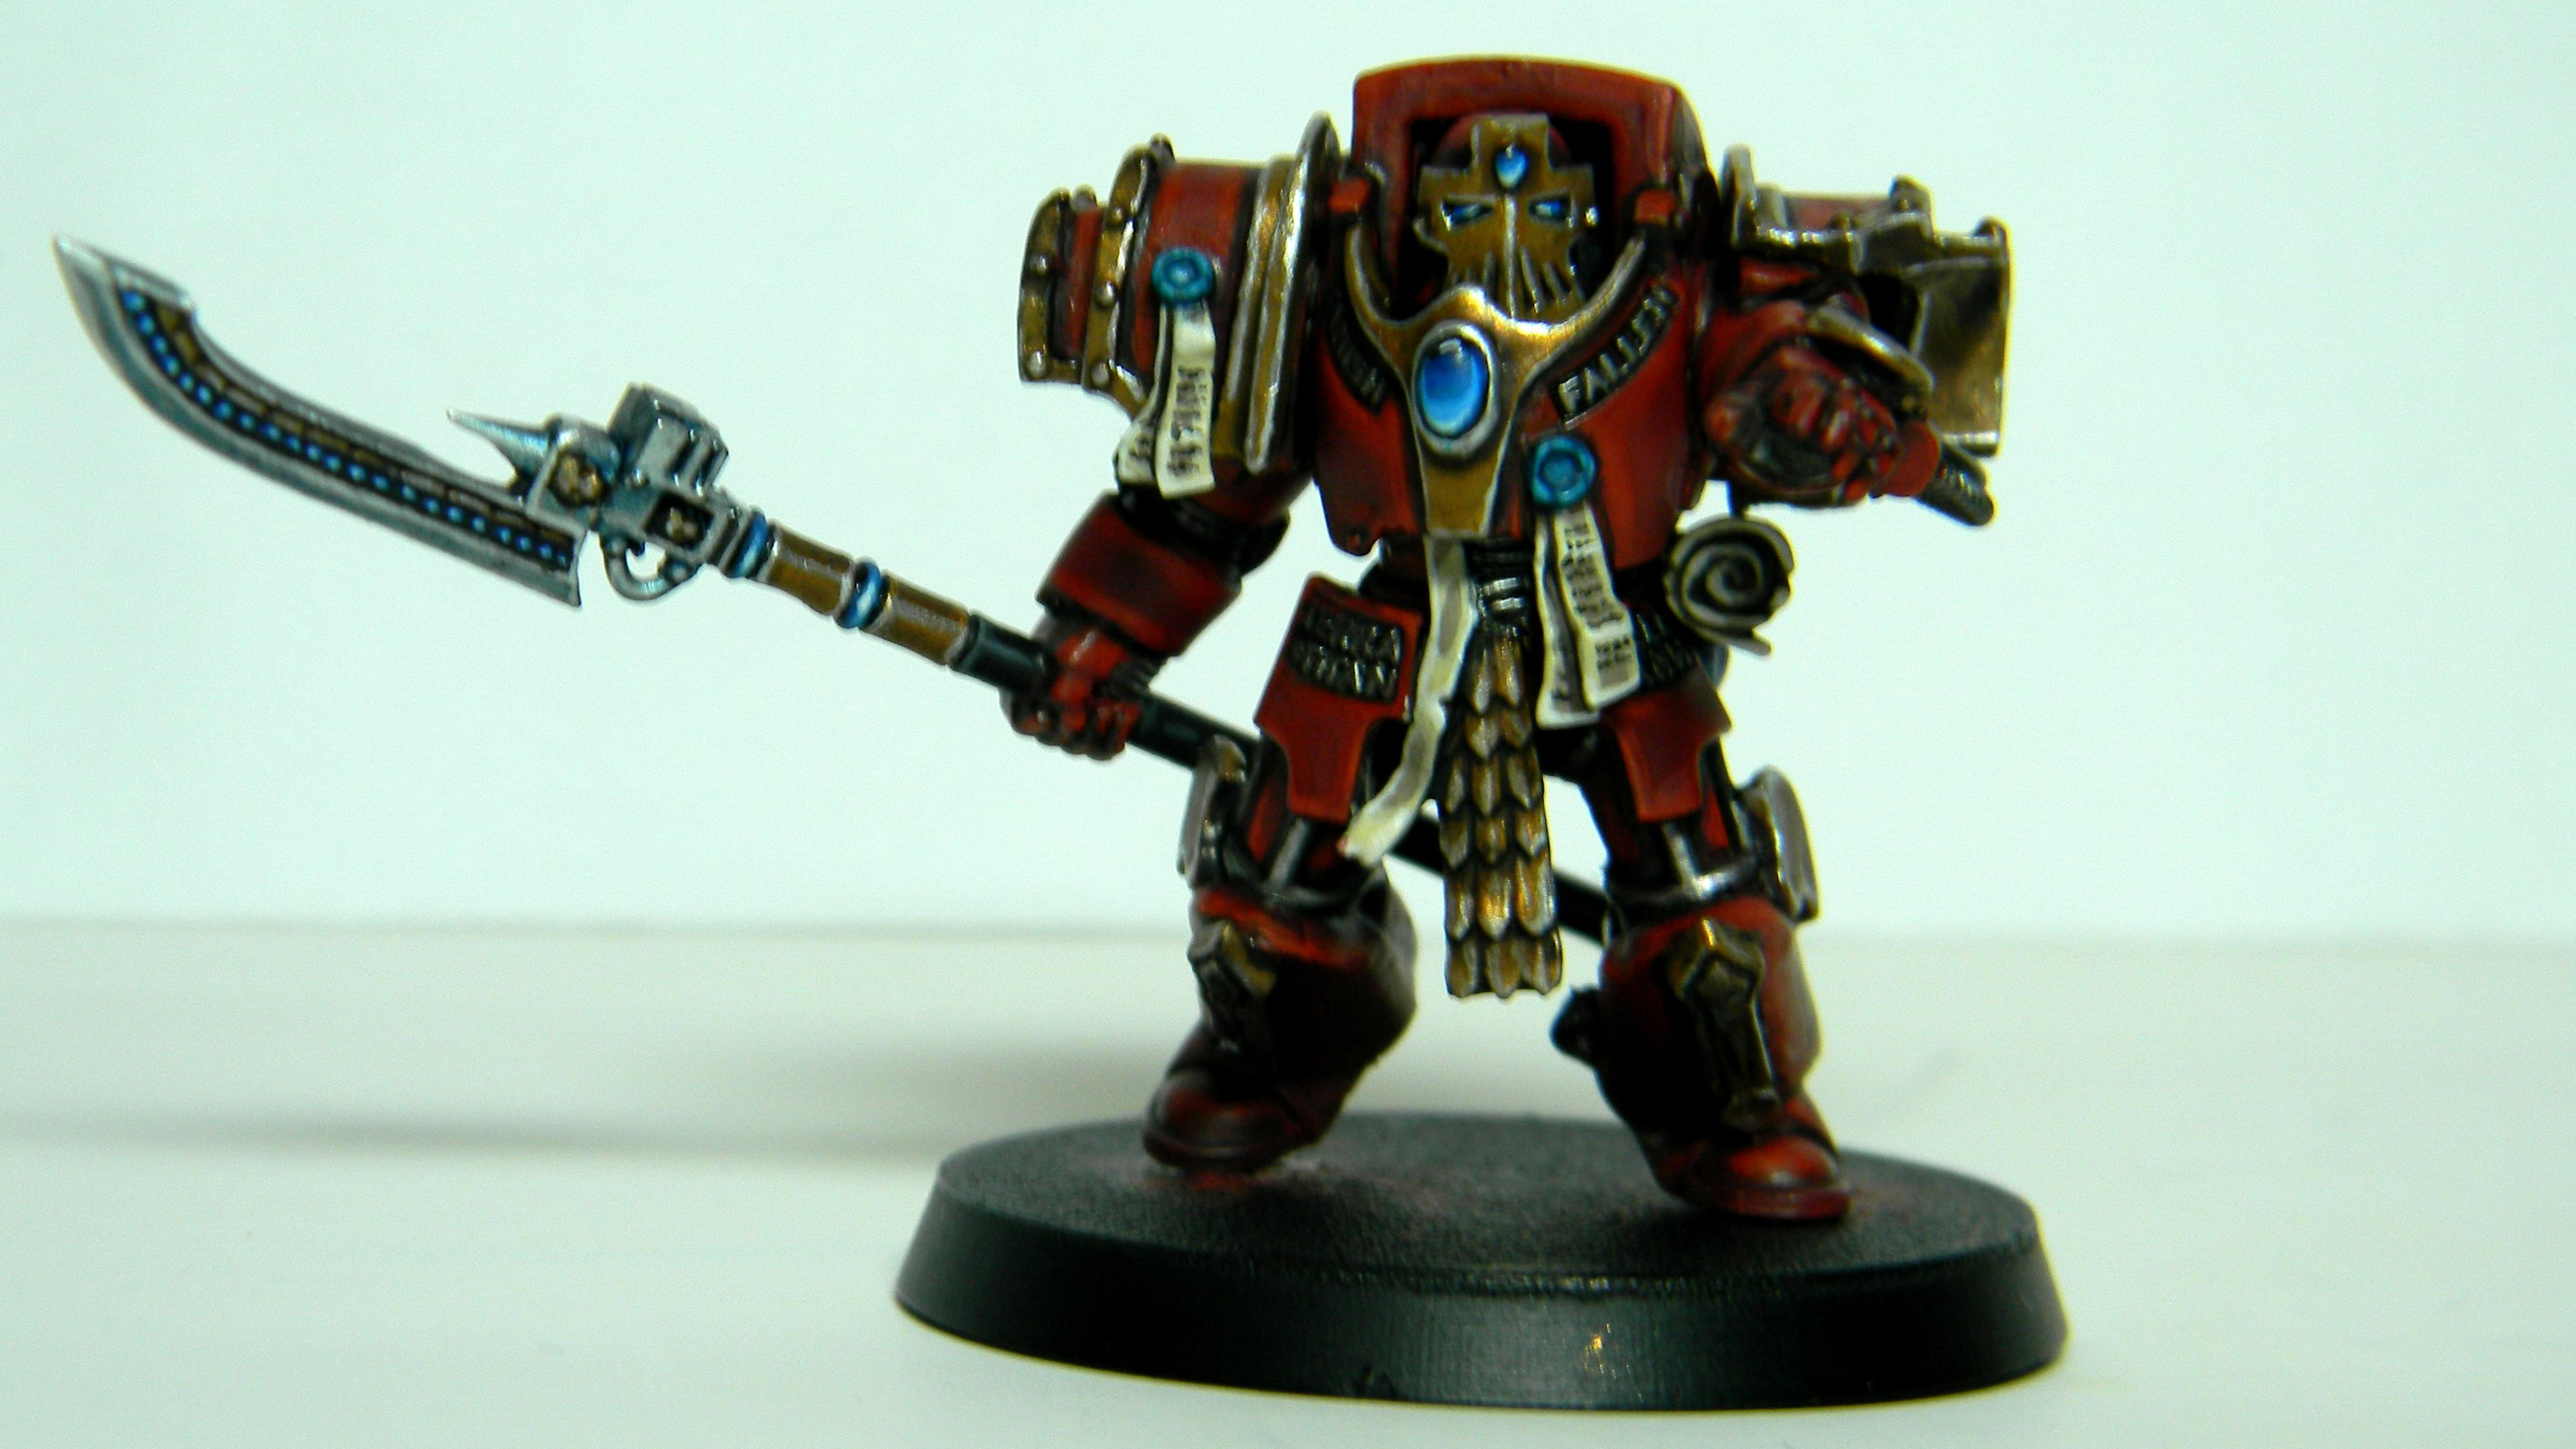 Conversion, Grey Knights, Pre Heresy, Sorcerer, Thousand Sons